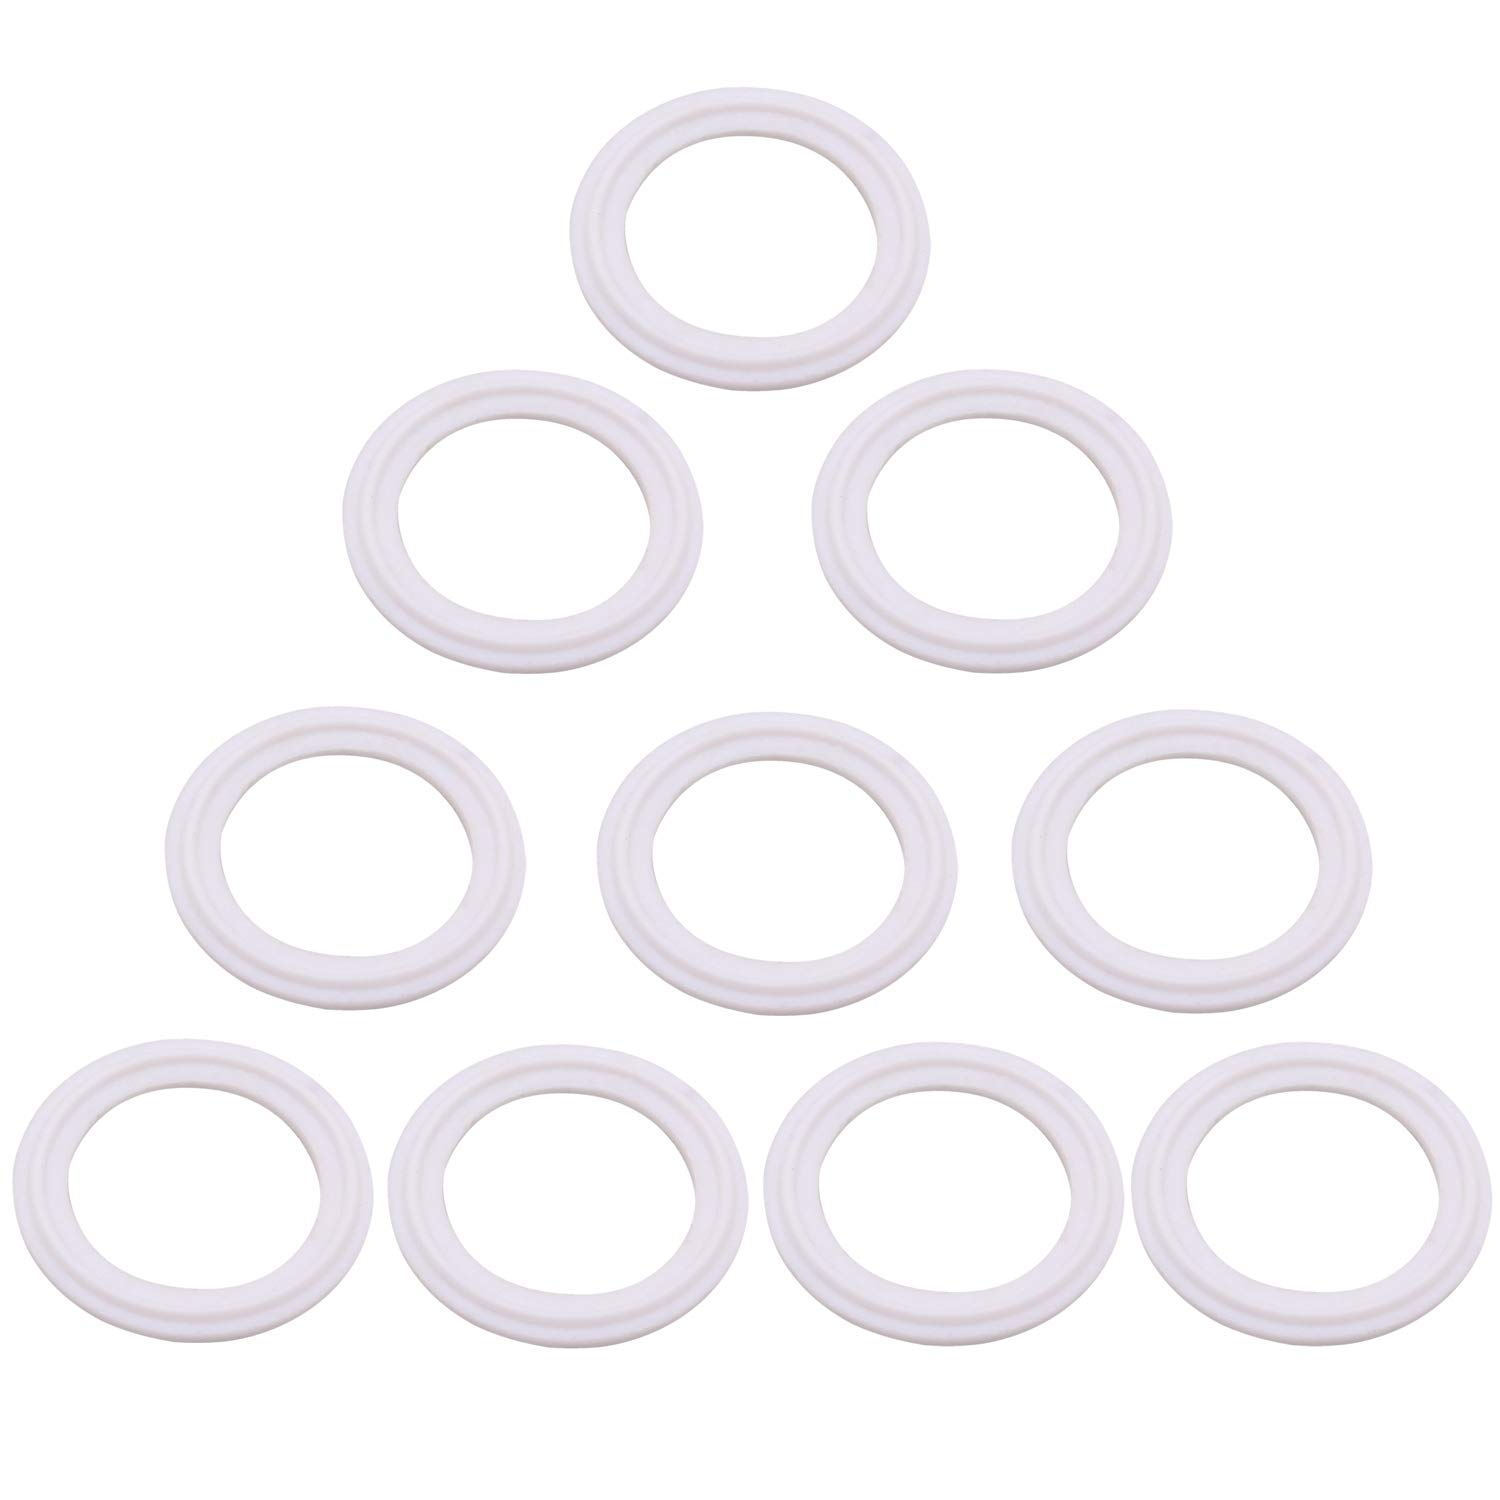 Dernord PTFE (Teflon) Tri-Clamp Gasket O-Ring - 1.5 inch Style Fits OD 50.5MM Sanitary Pipe Weld Ferrule (Pack of 10)